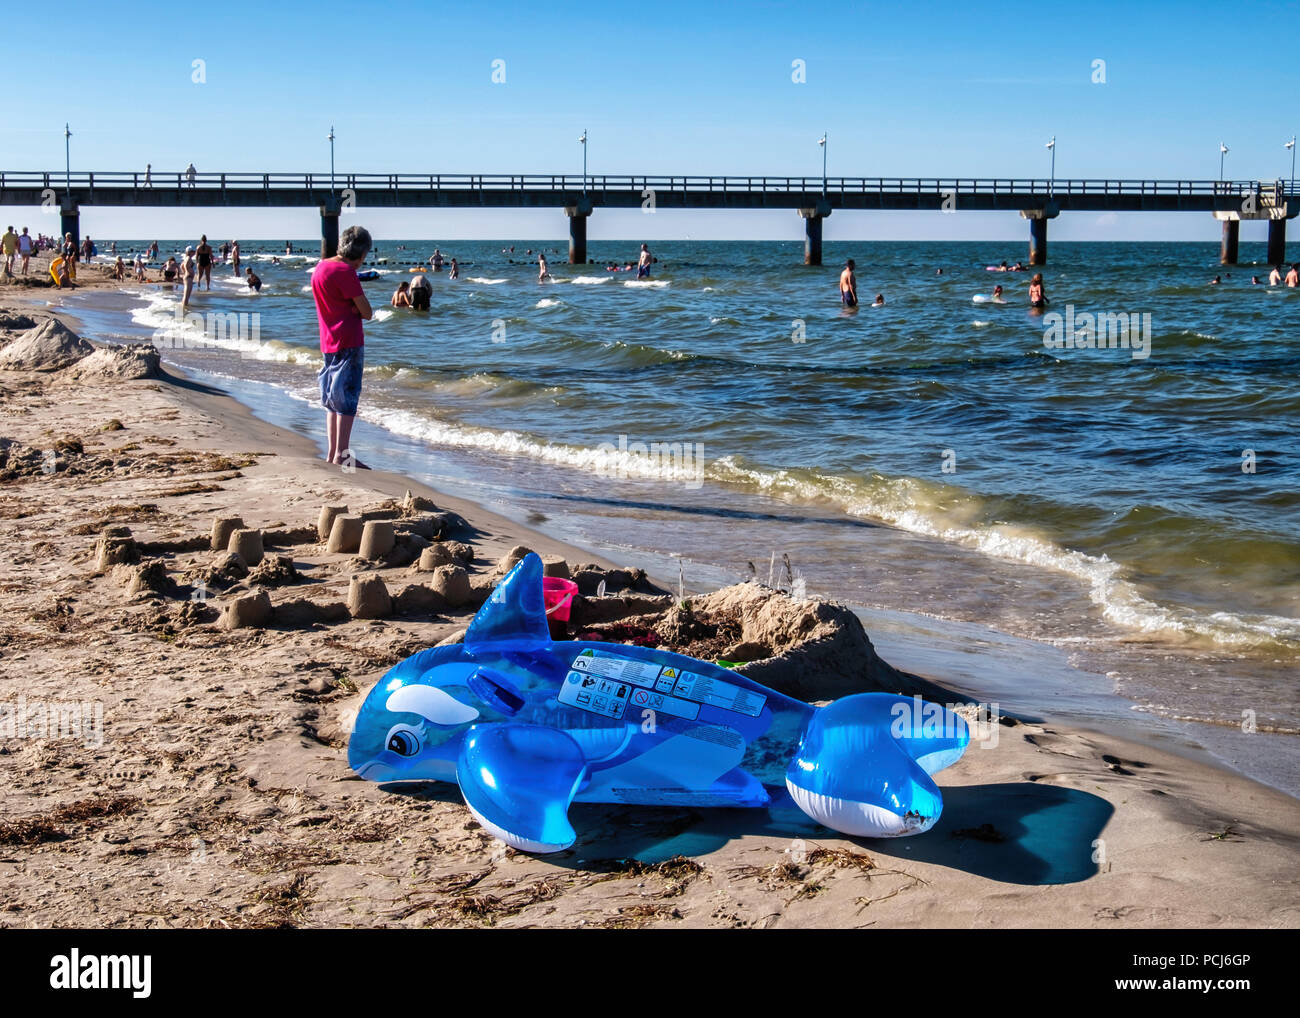 Crowded Bansin beach as people holiday at the Baltic sea resort on Usedom Island during 2018 Summer heat wave, Heringsdorf, Germany Bansin beach is th - Stock Image